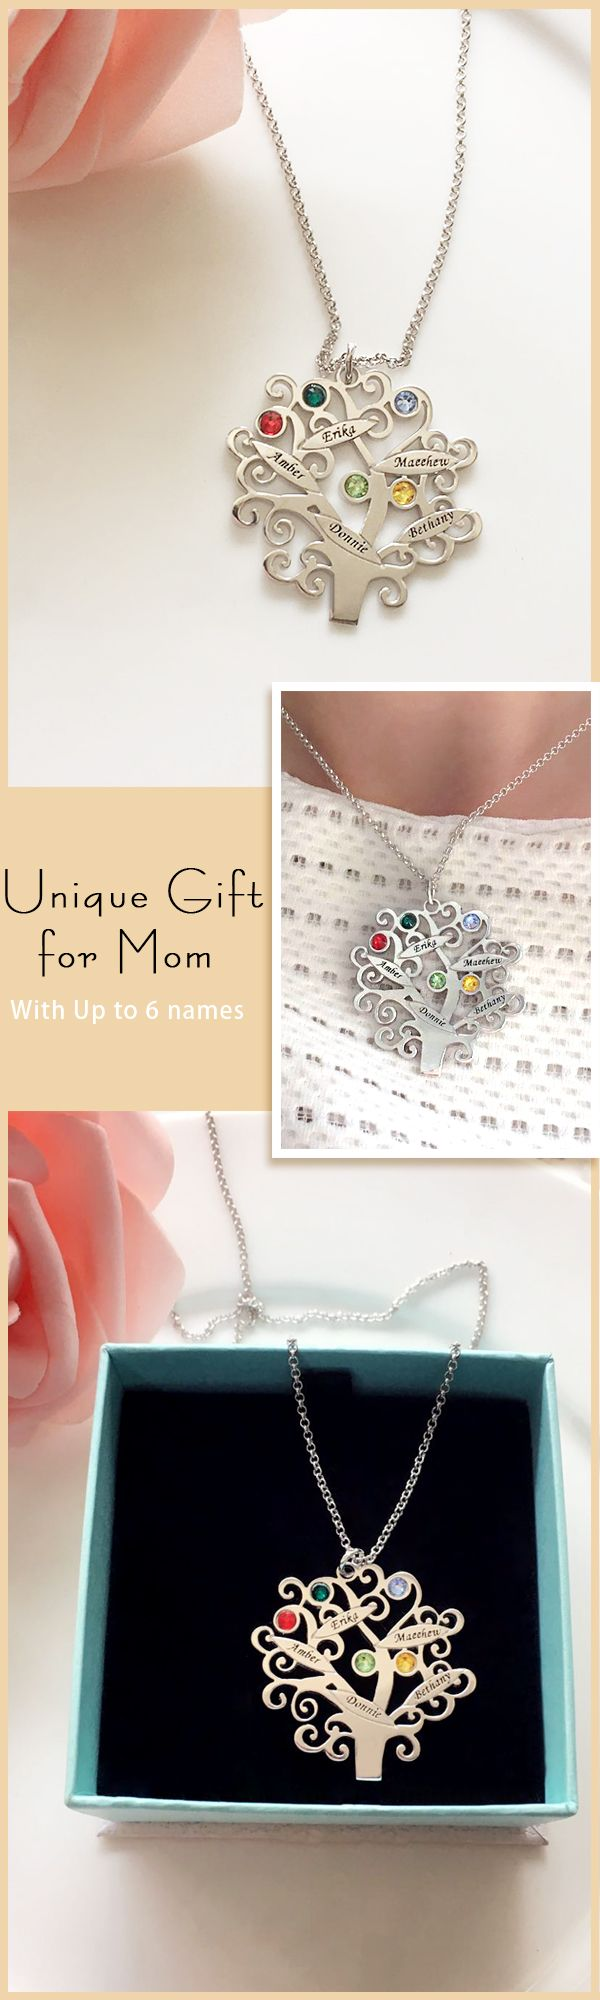 Family tree charm that's perfect for celebrating families, special moments and everything in between. ❤Find completely special Gift for your mom from getnameneckalce